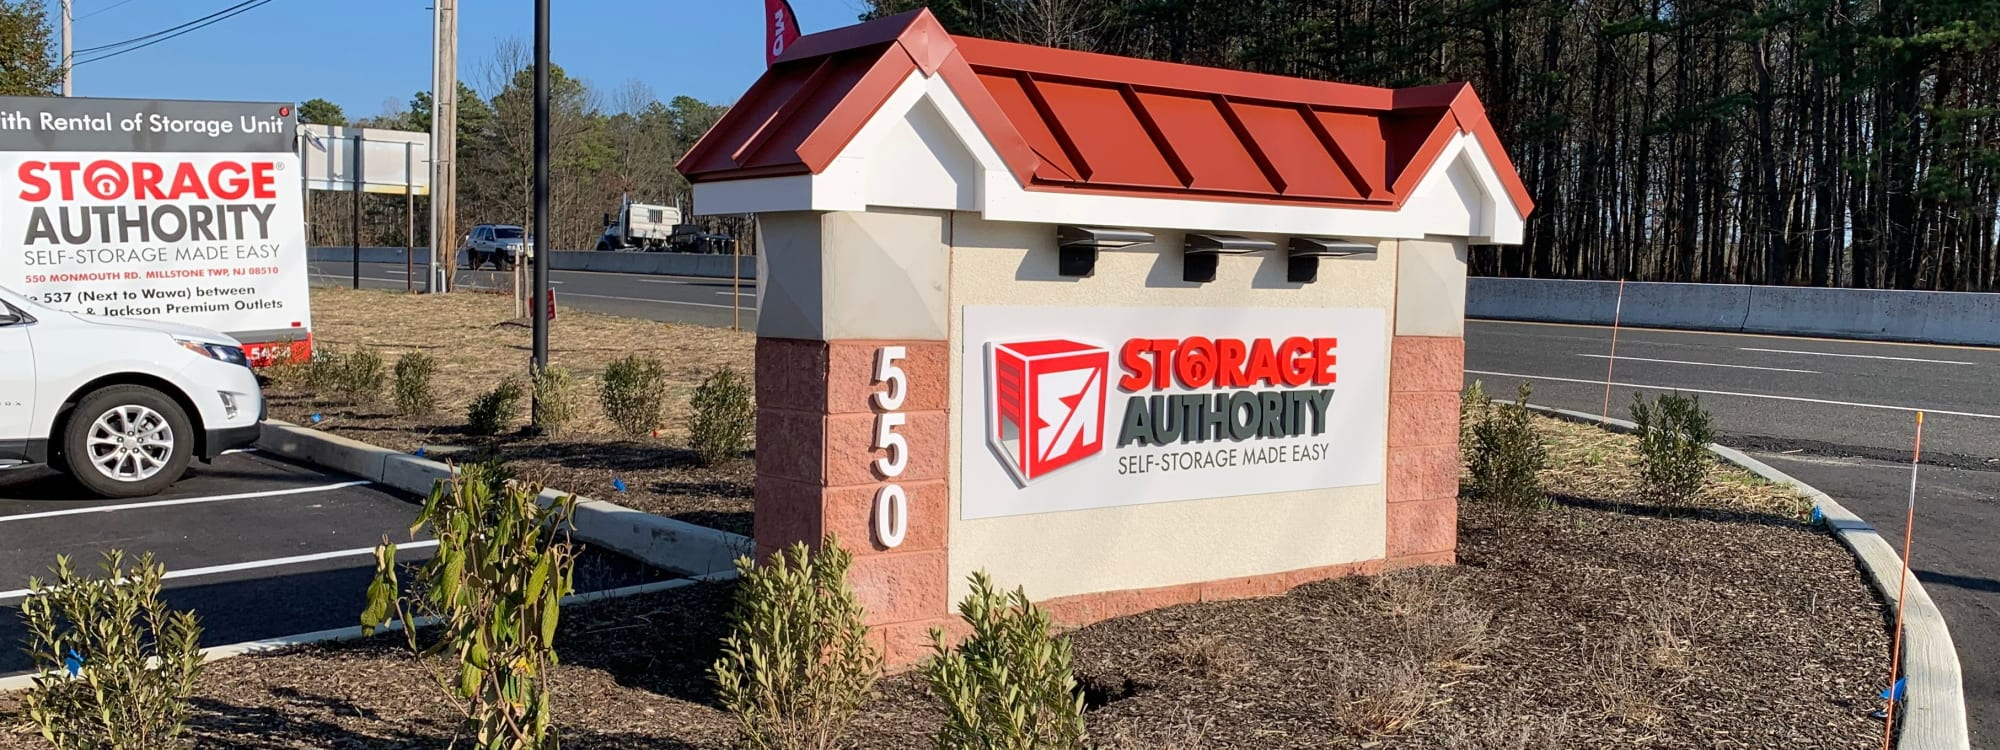 Storage Authority Monmouth Rd self storage in Millstone Township, New Jersey